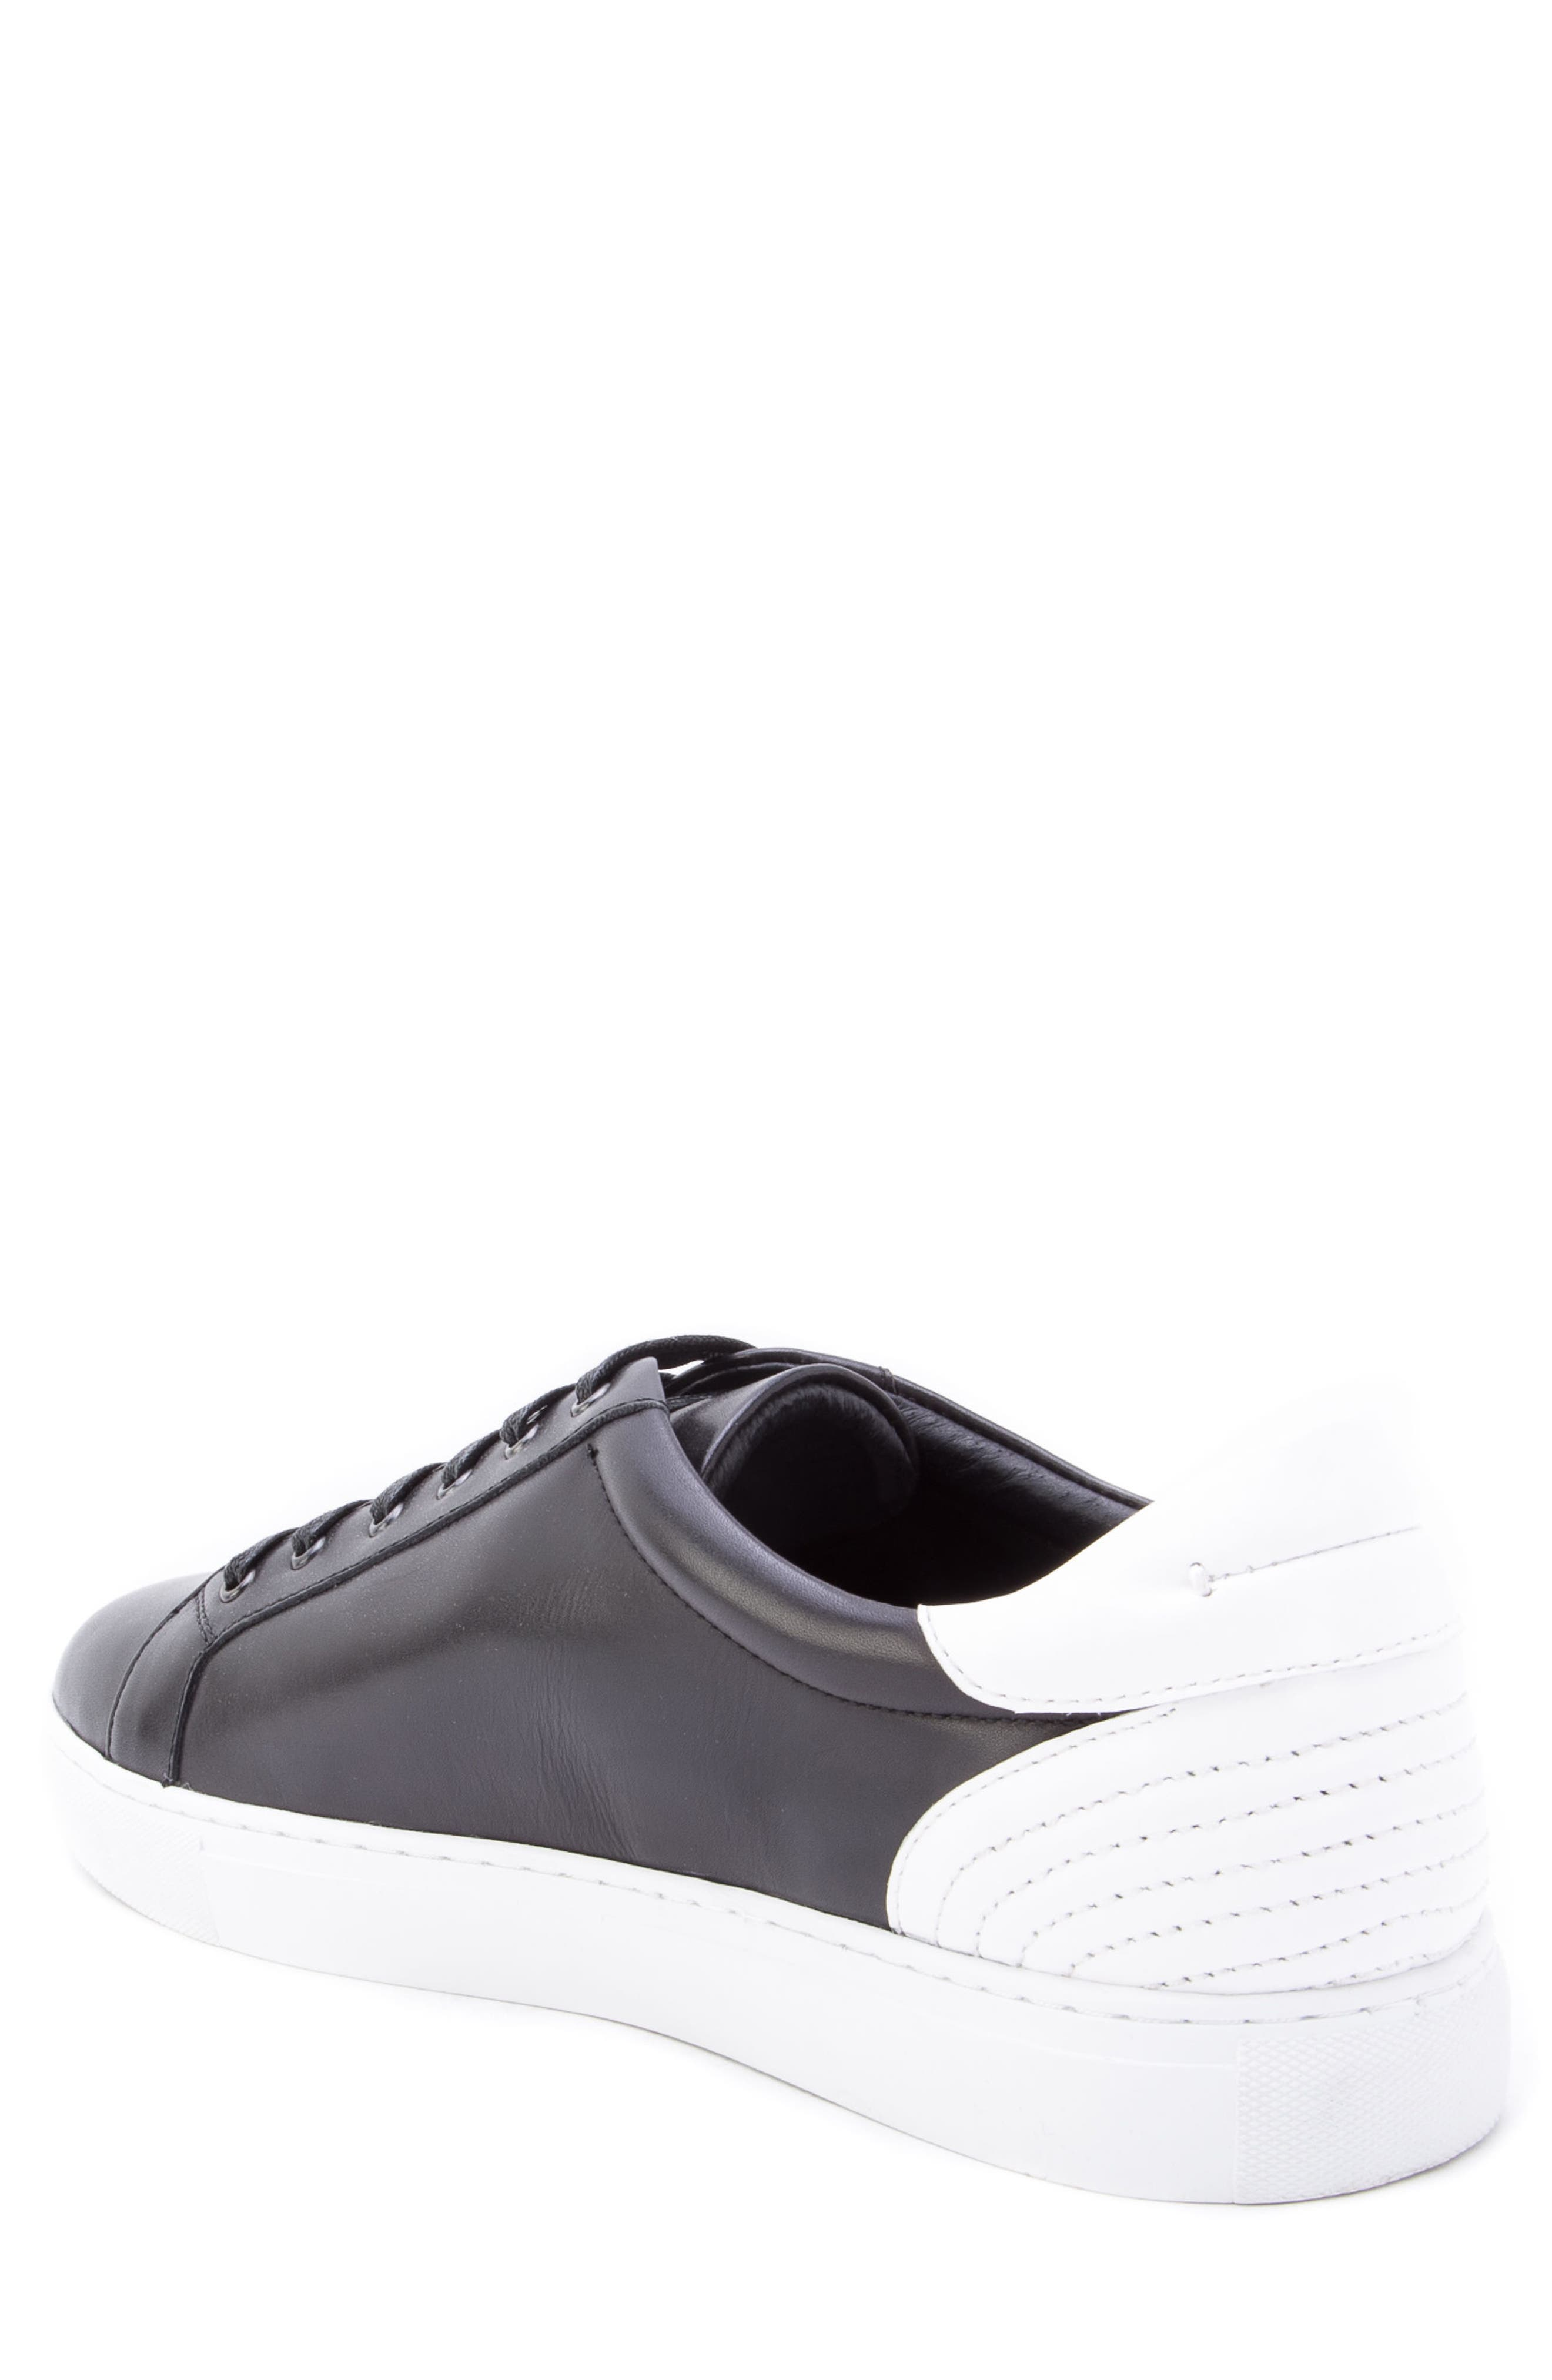 Scheffer Low Top Sneaker,                             Alternate thumbnail 2, color,                             BLACK LEATHER